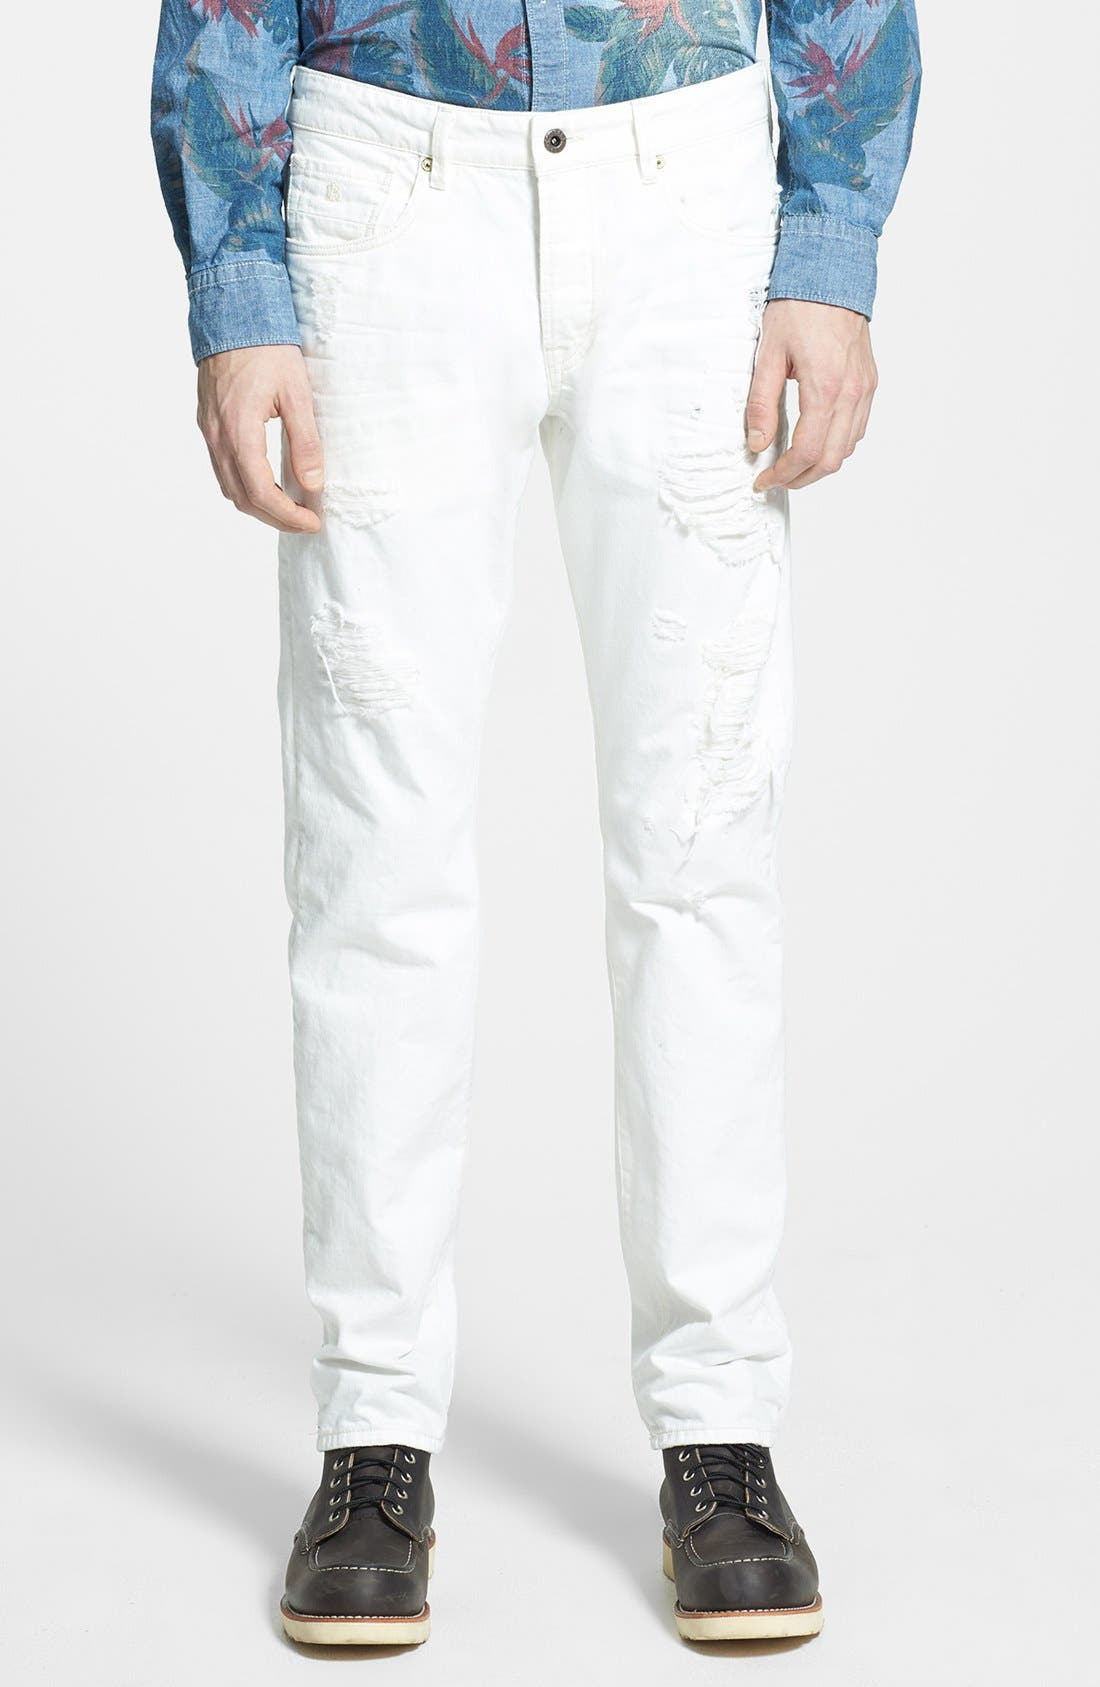 Alternate Image 1 Selected - Scotch & Soda 'Ralston' Slim Straight Leg Jeans (Washed Out White)